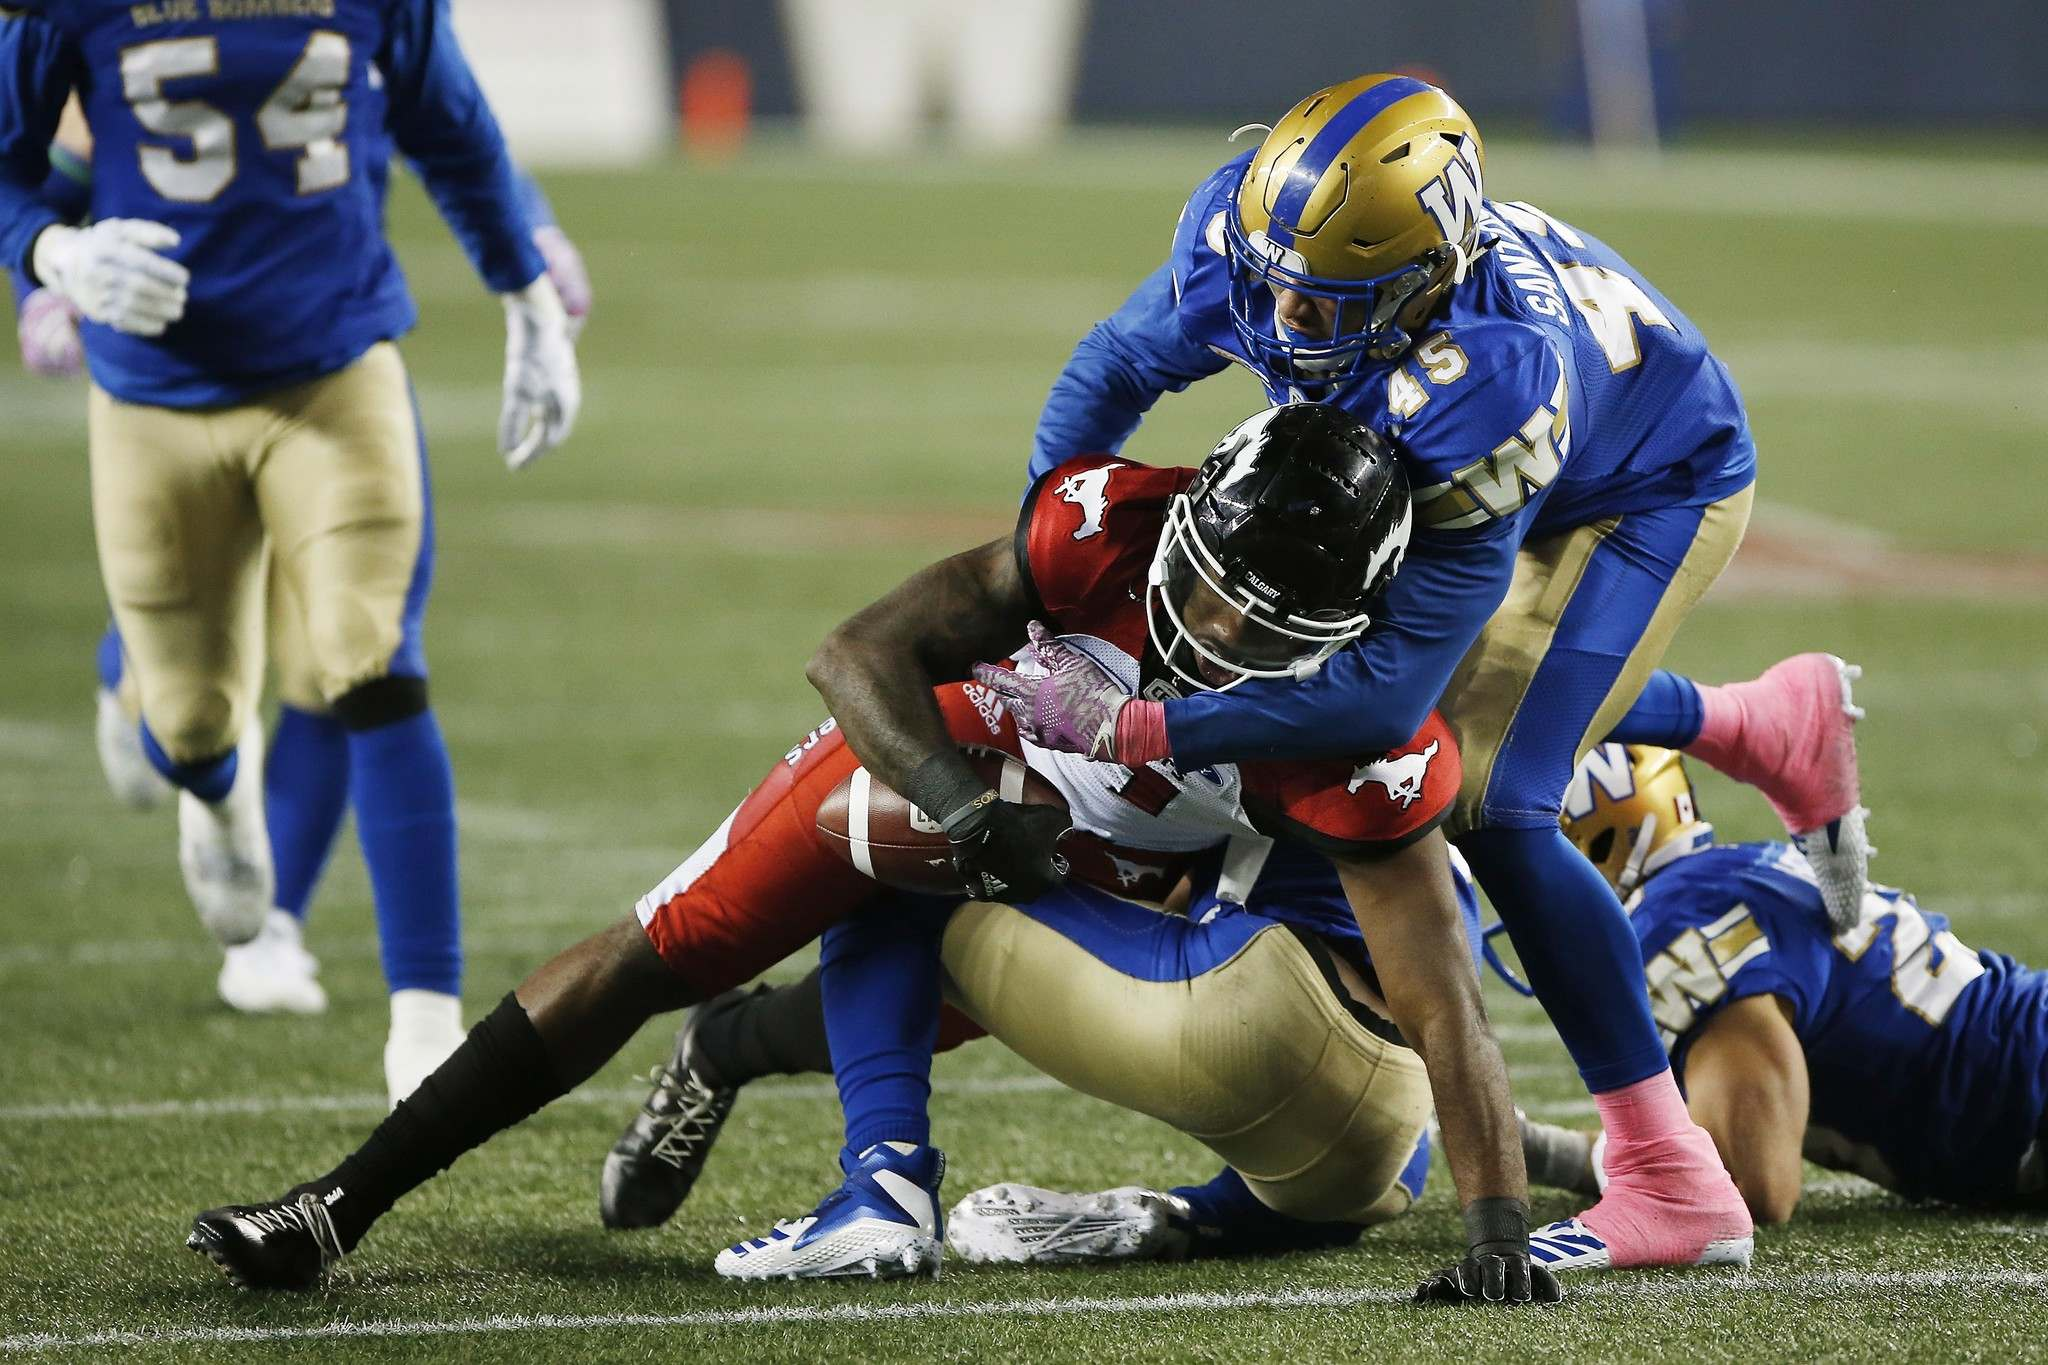 Winnipeg Blue Bombers&#39; Jovan Santos-Knox (45) forces Calgary Stampeders&#39; Chris Matthews (81) to fumble the ball during the first half of CFL action Friday. JOHN WOODS / THE CANADIAN PRESS</p>